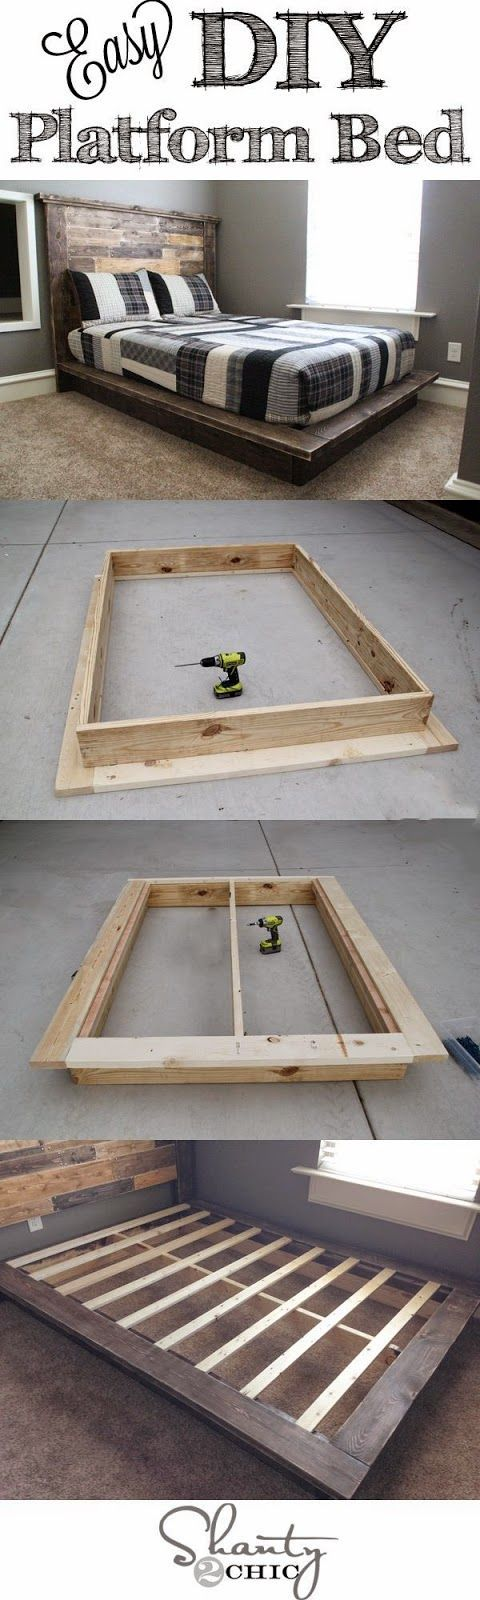 17 Easy To Build Diy Platform Beds Perfect For Any Home Diy Platform Bed Diy Furniture Projects Cool Diy Projects